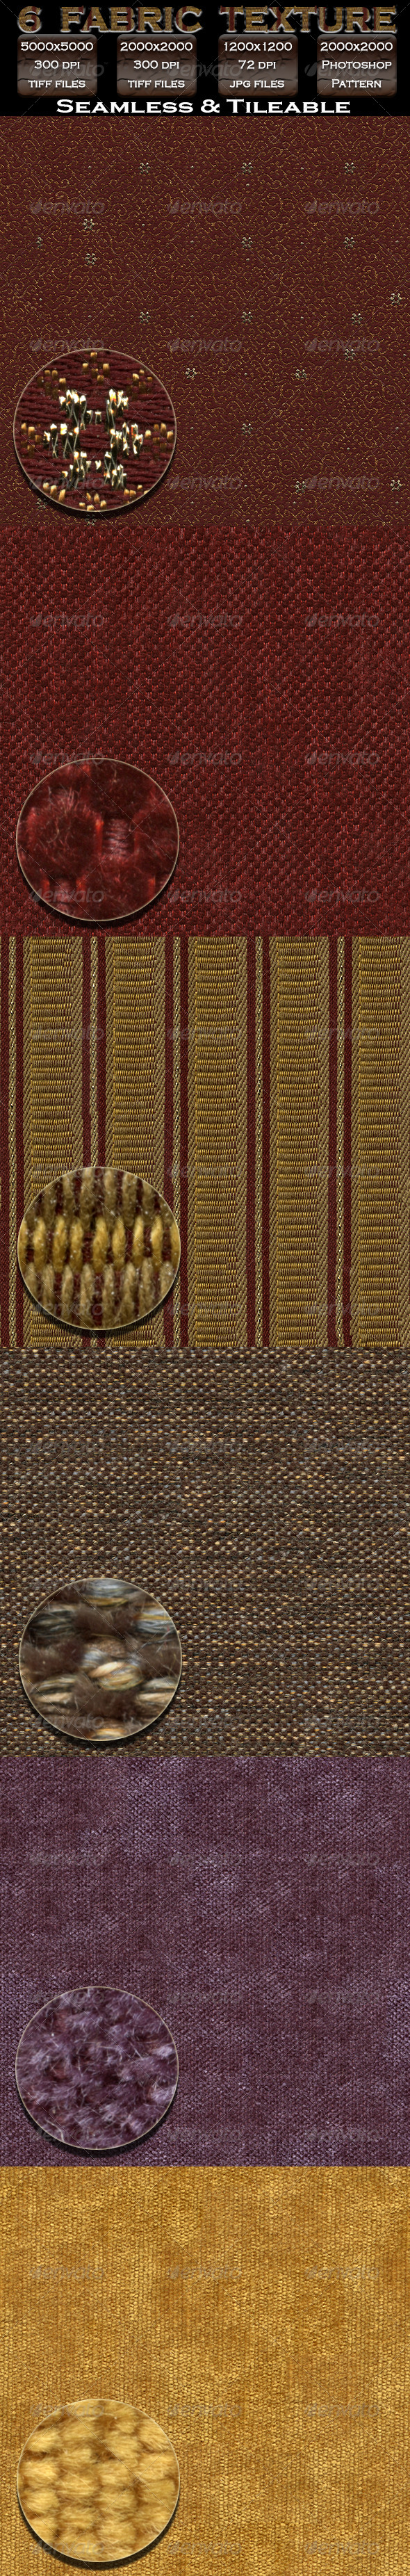 6 Fabric Texture Pack - Fabric Textures